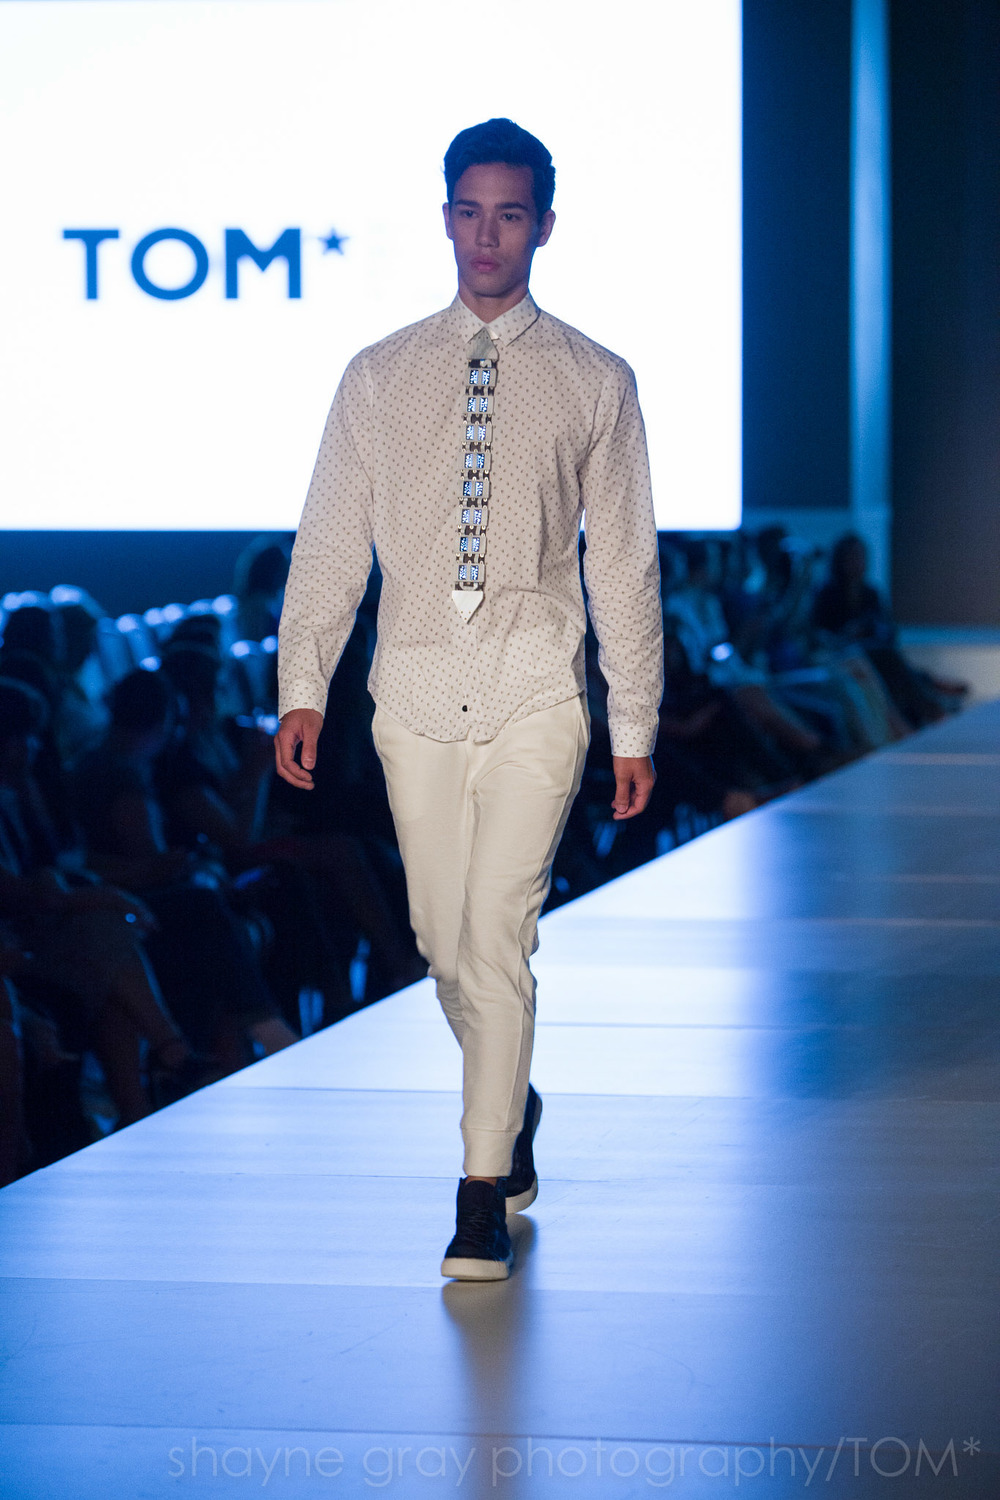 Shayne-Gray-Toronto-men's-fashion_week-TOM-wearables-wearable-technology-8730.jpg